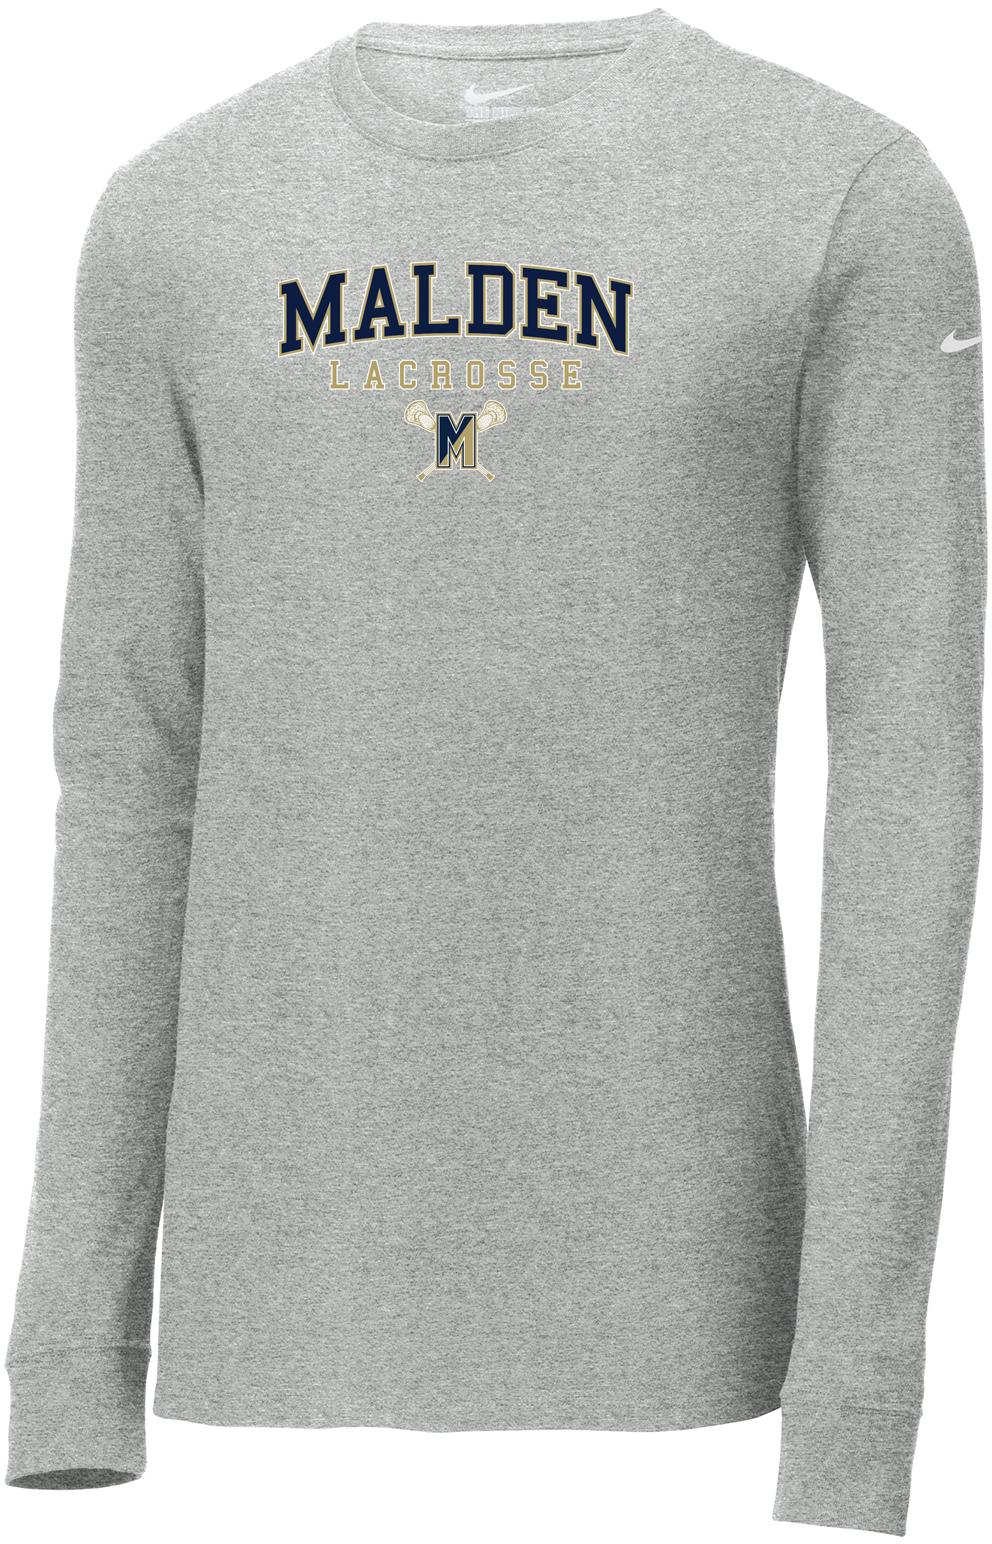 Malden Lacrosse Nike Core Cotton Long Sleeve Tee